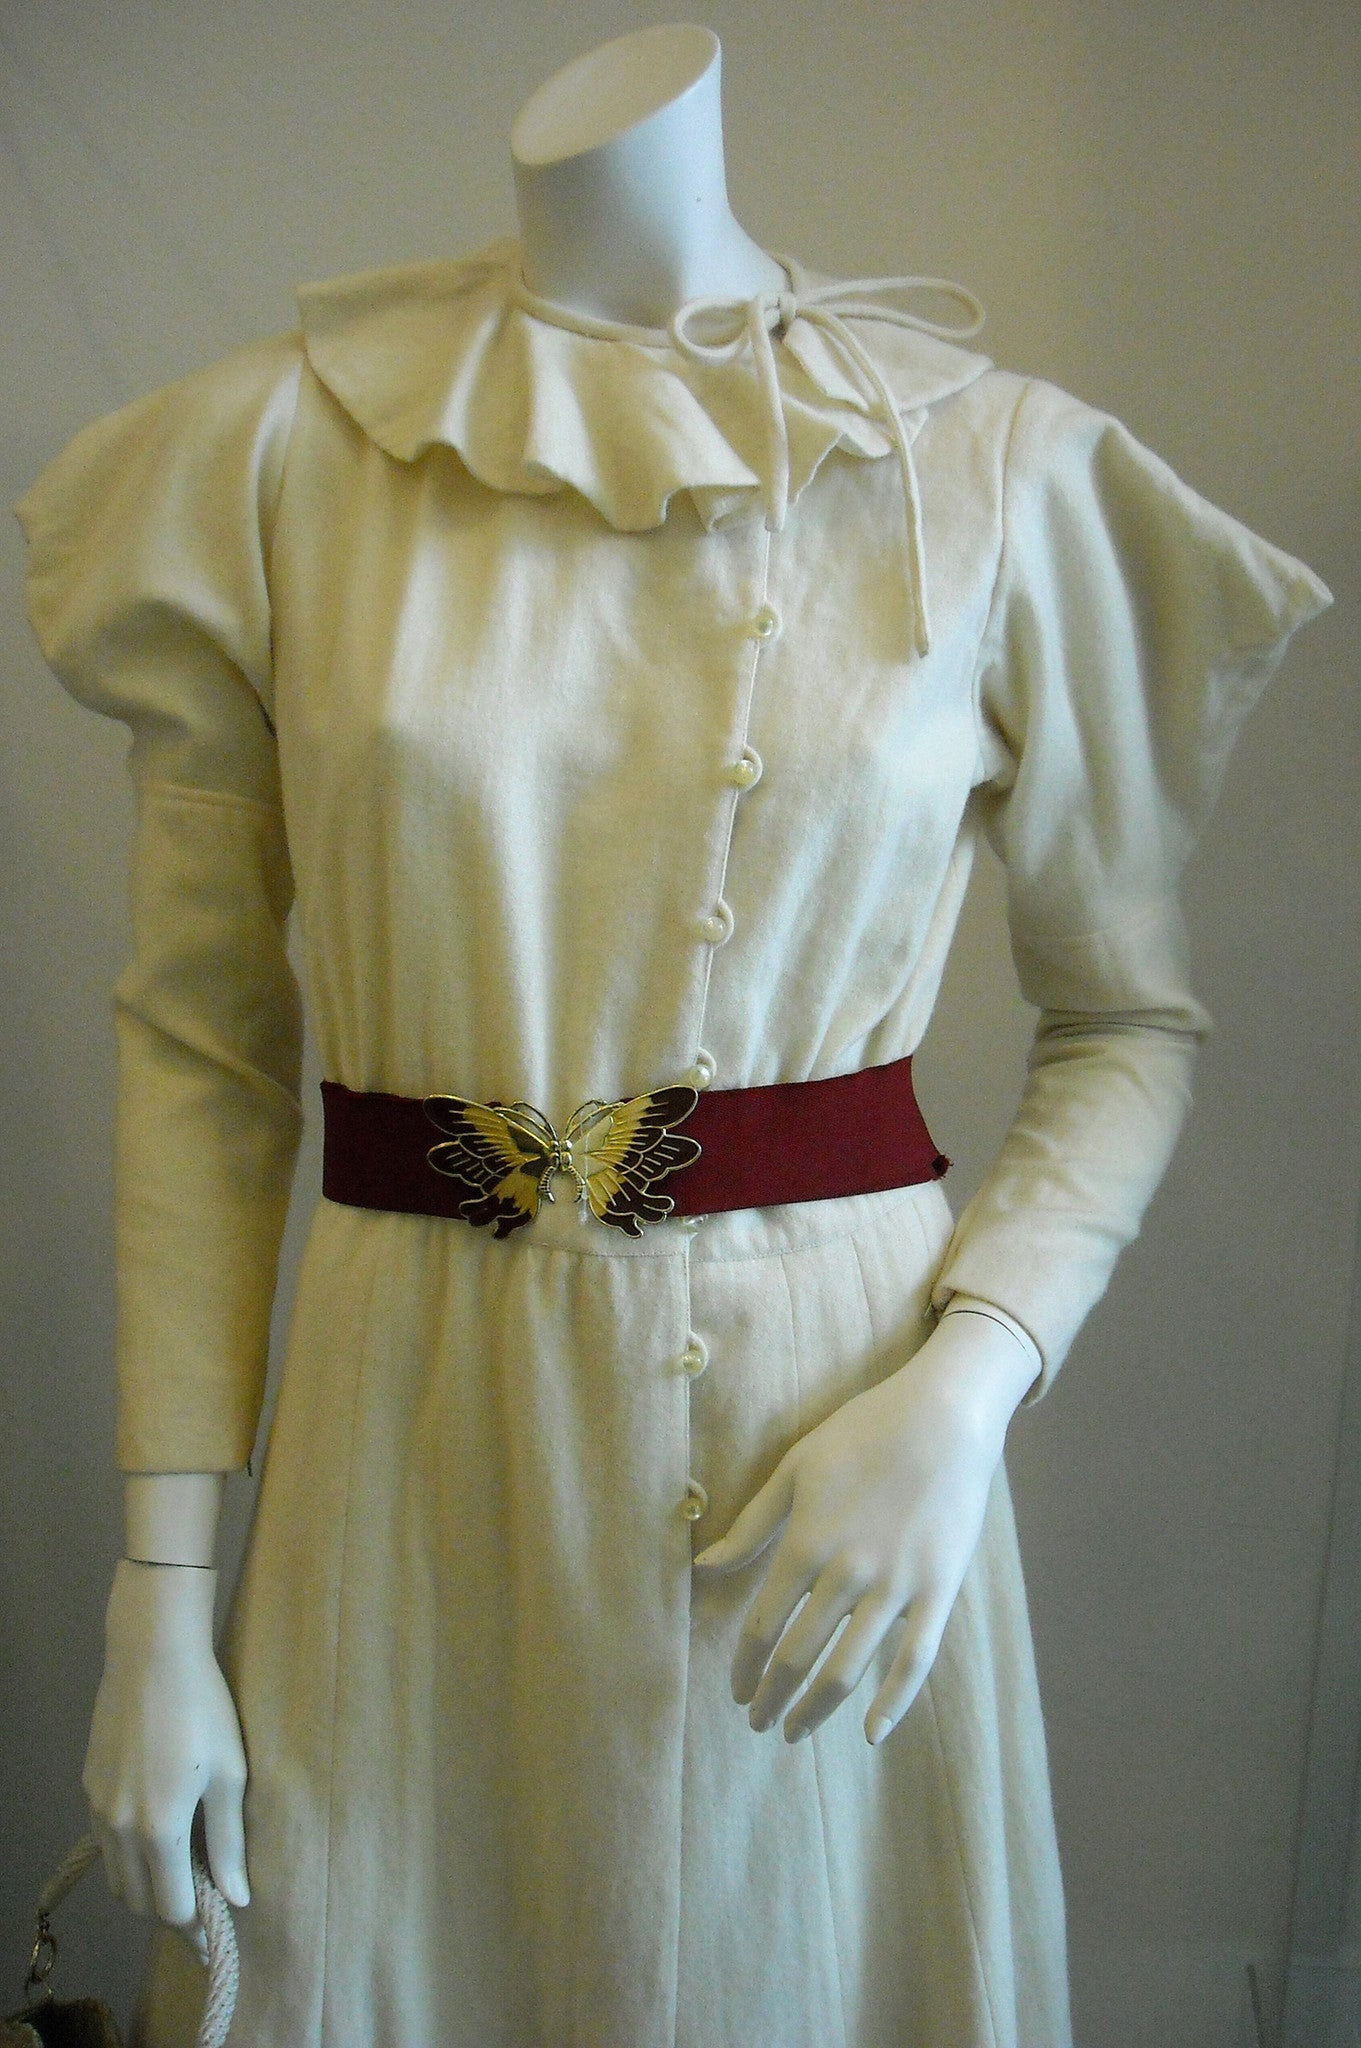 At The Edge Of Cool Vintage Emanuel Ungaro Cream Avant Garde Dress